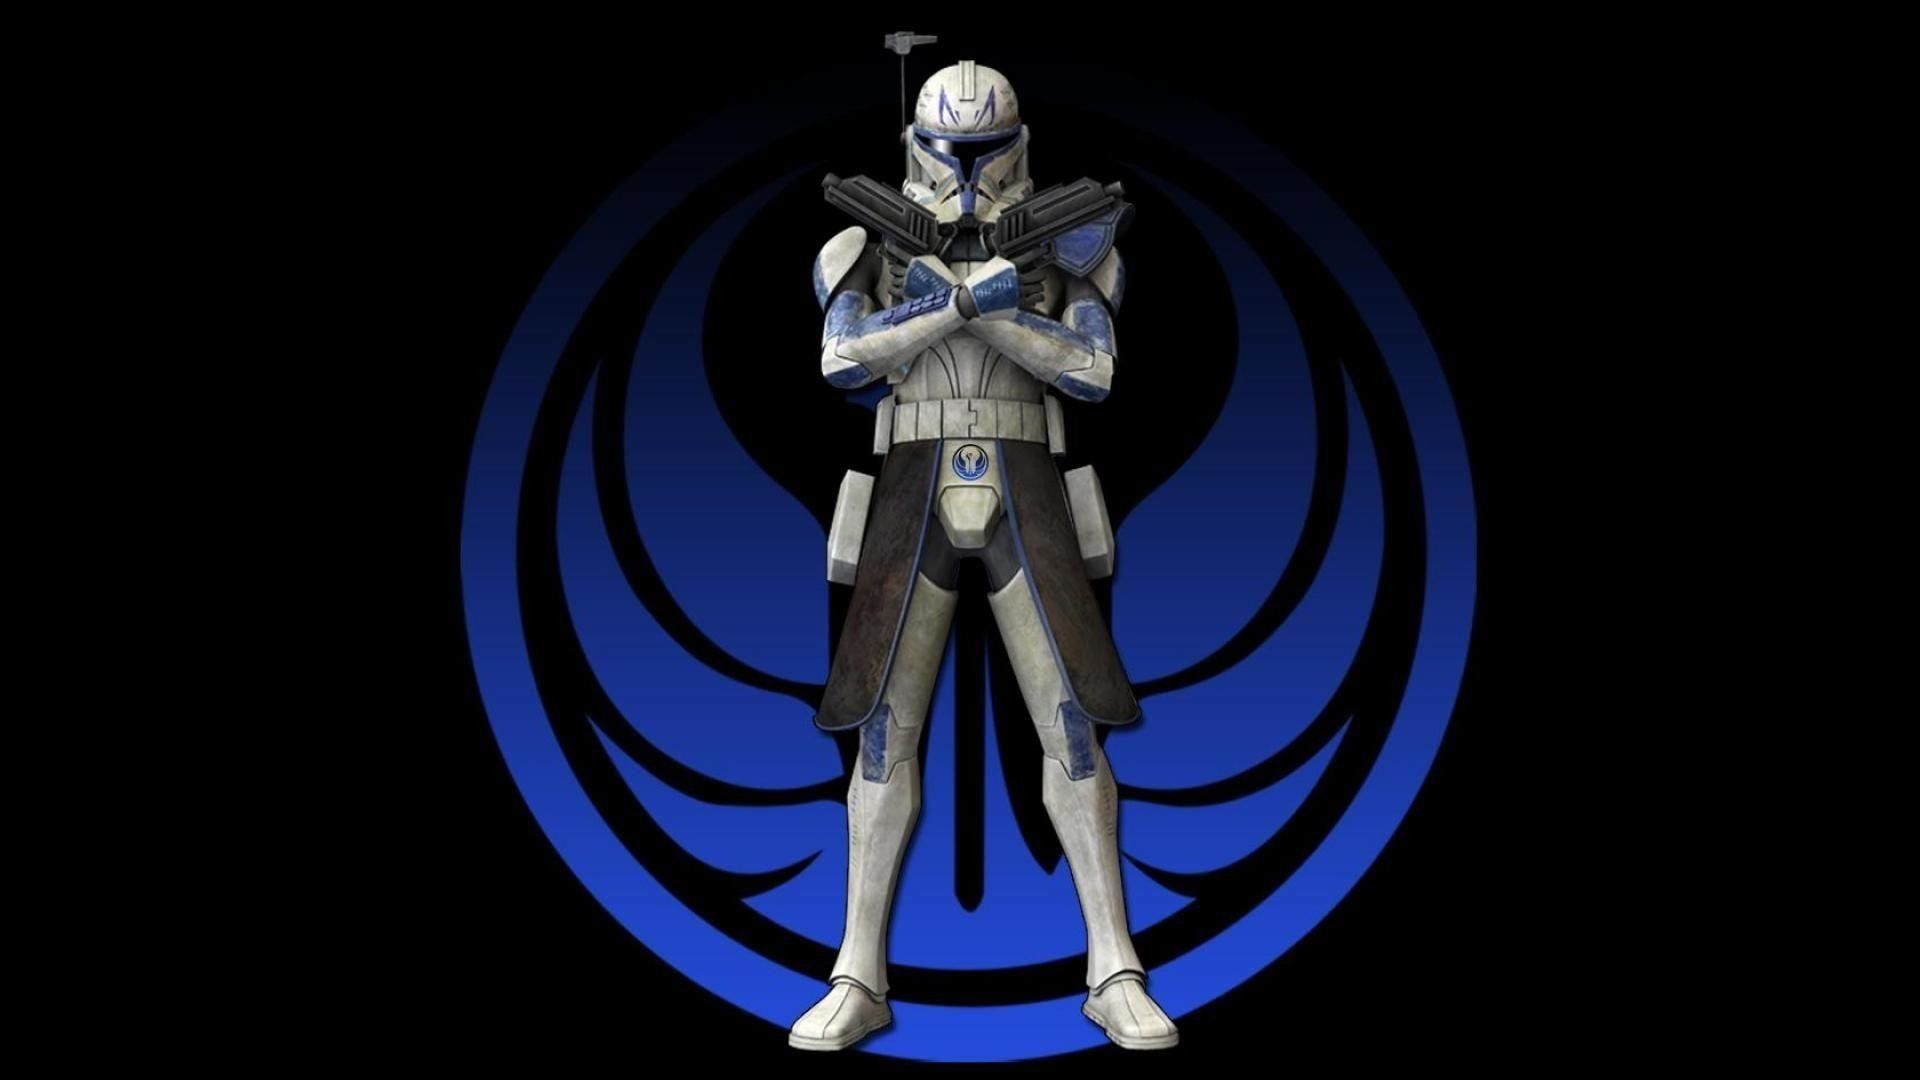 Captain Rex Wallpapers Top Free Captain Rex Backgrounds Wallpaperaccess